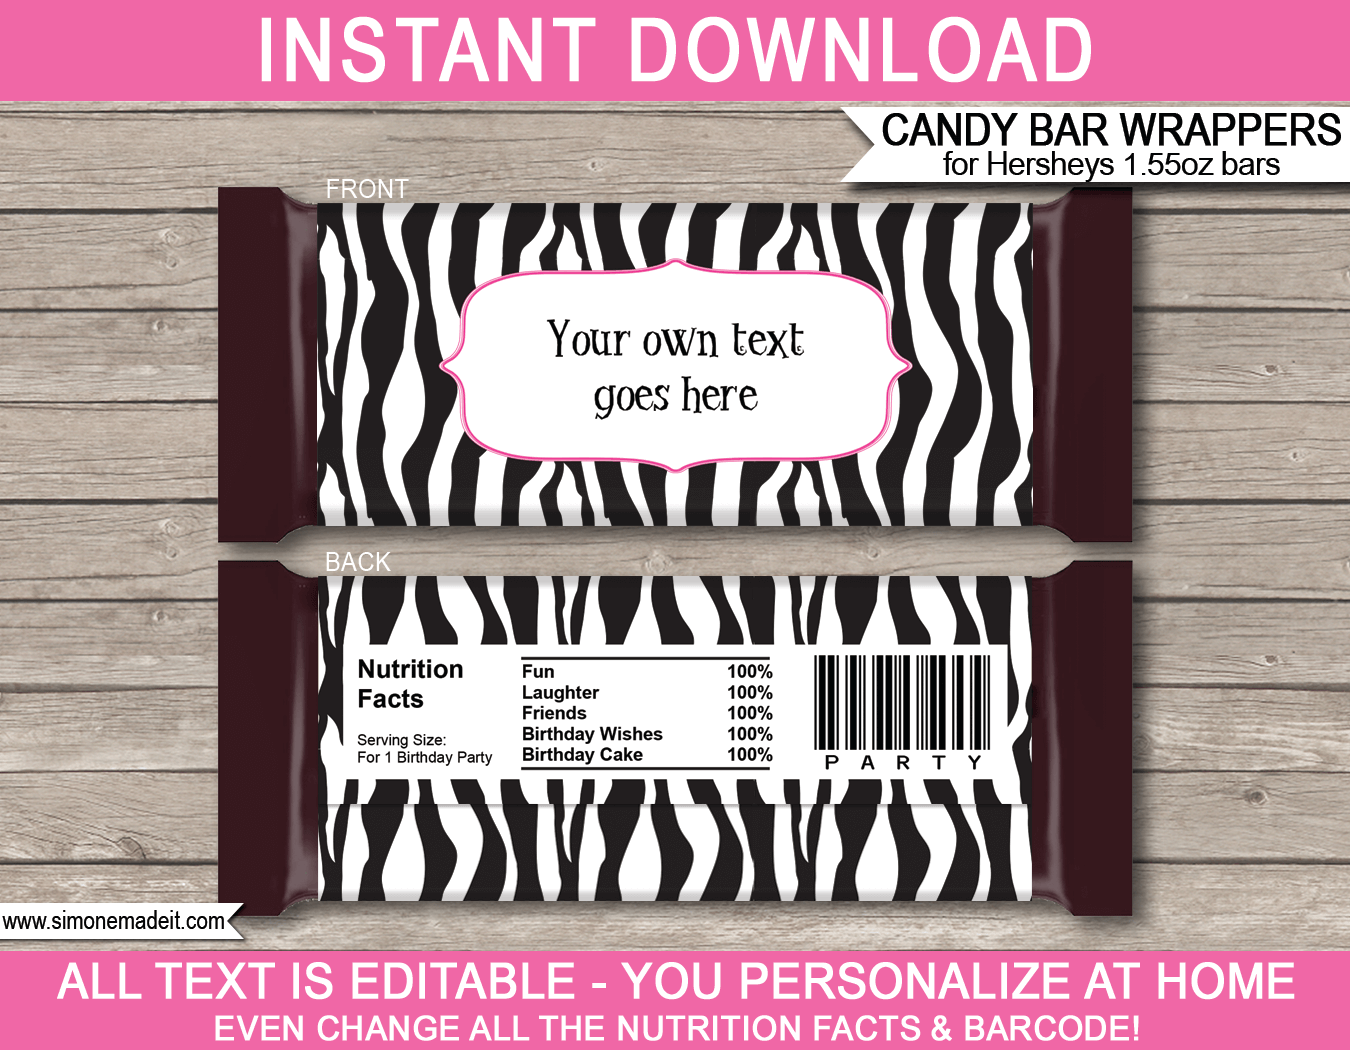 chocolate bar label template - zebra hershey candy bar wrappers personalized candy bars